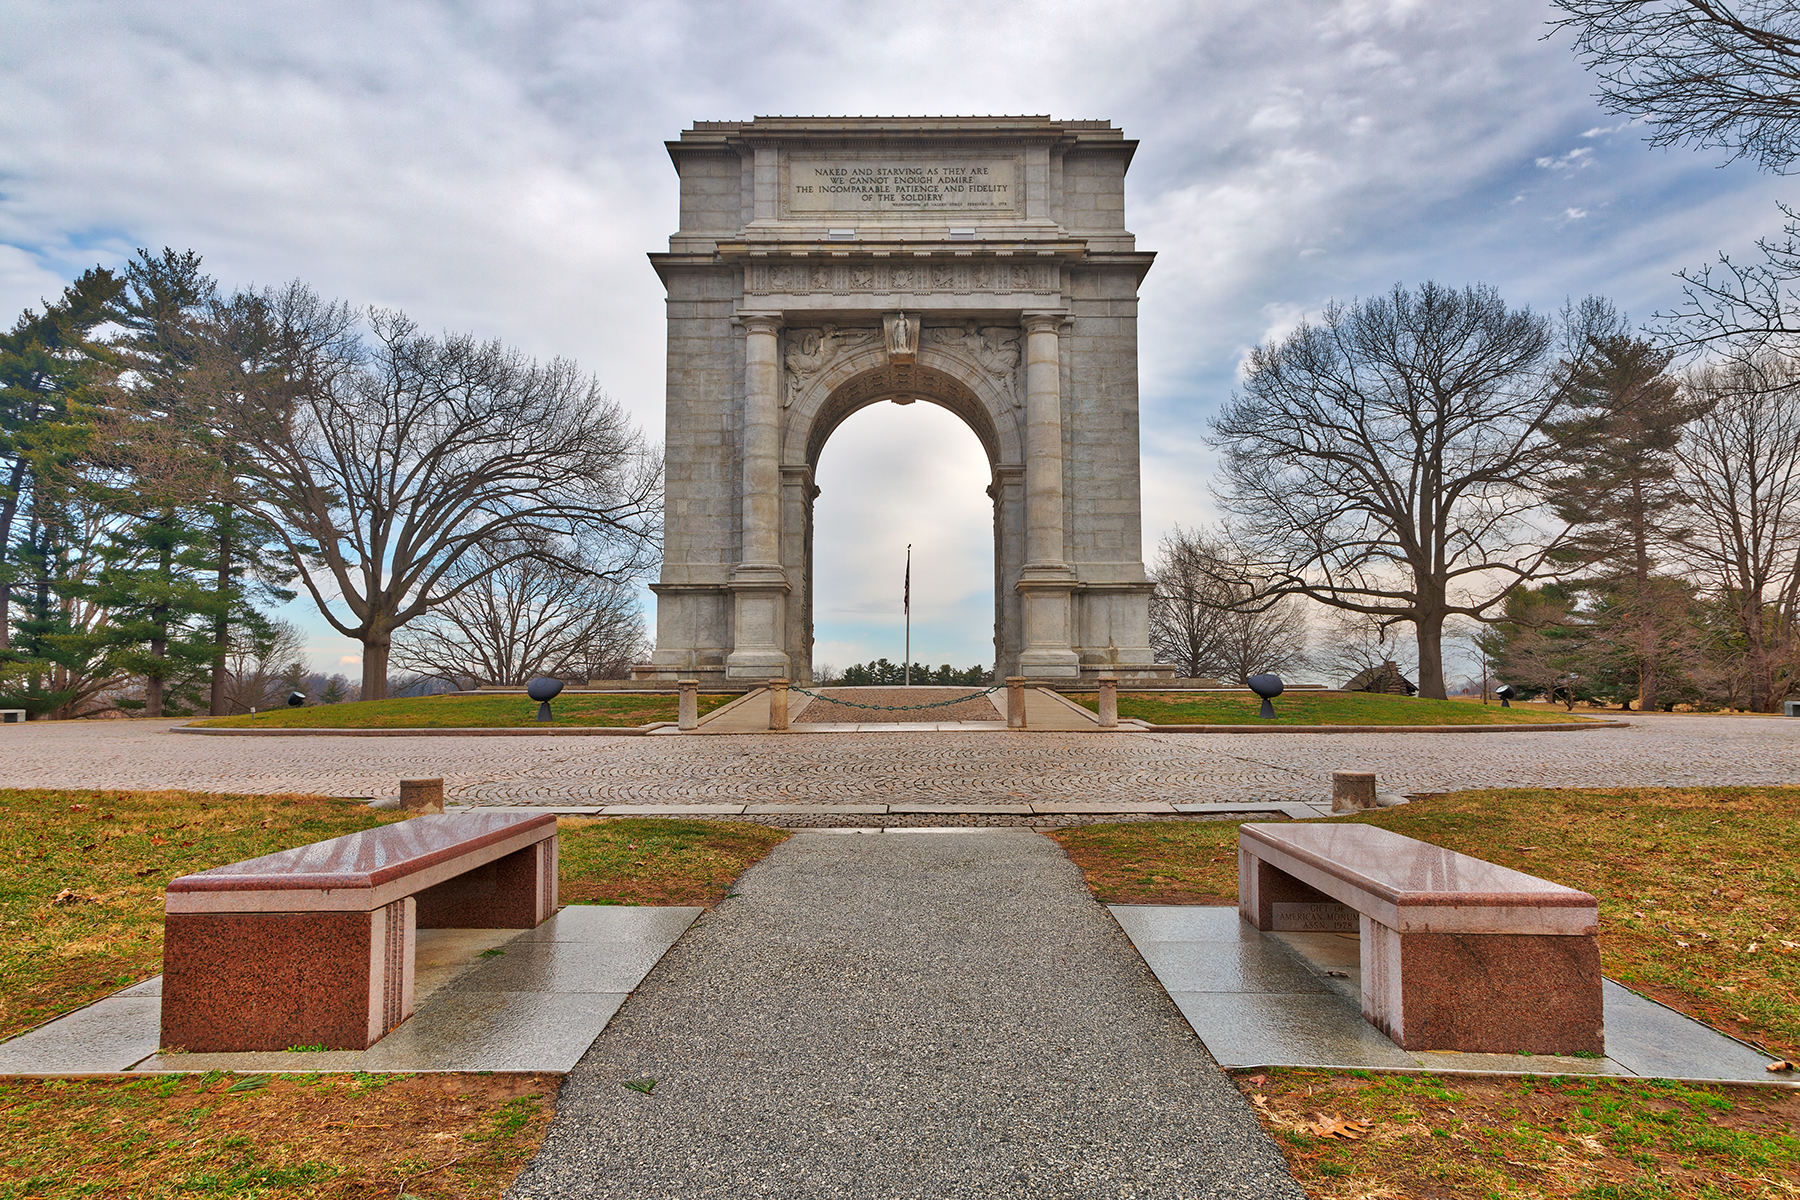 Valley forge national memorial arch - hdr photo